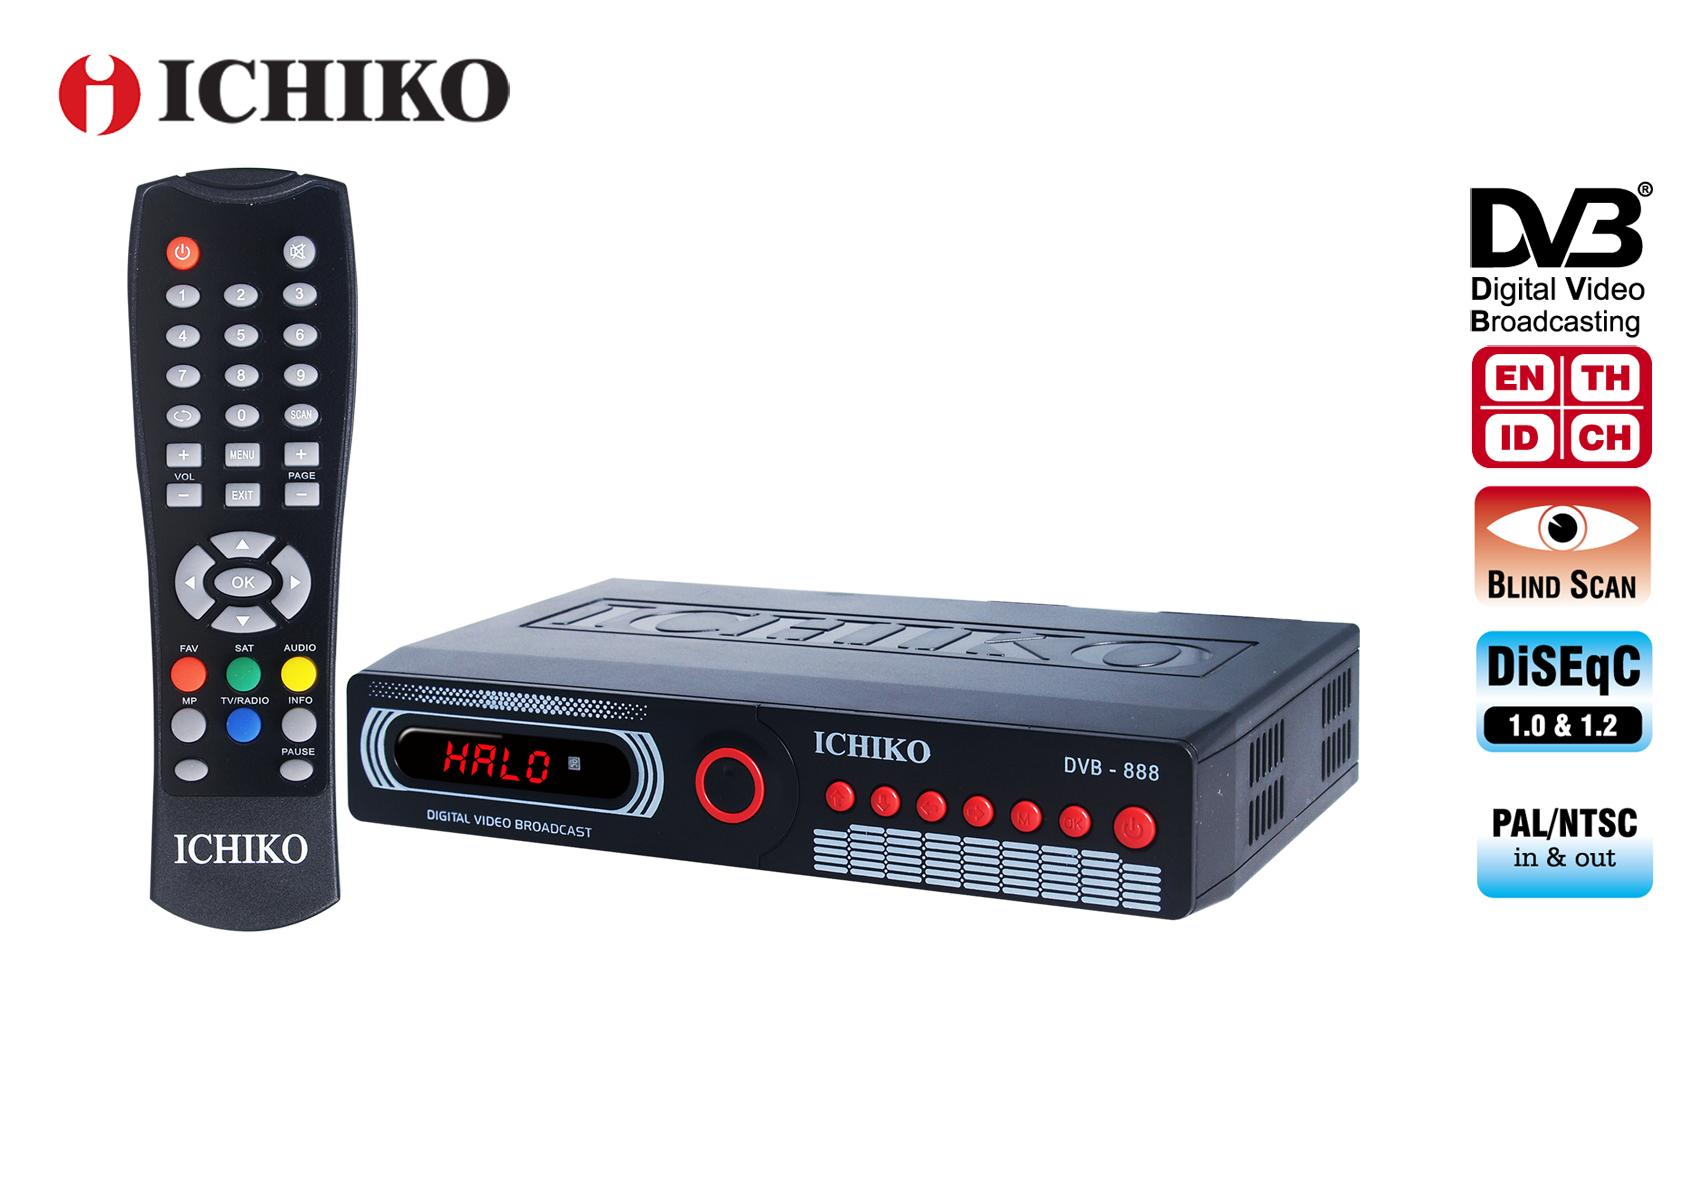 ICHIKO Satellite Receiver DVBS (Model 888 C1)